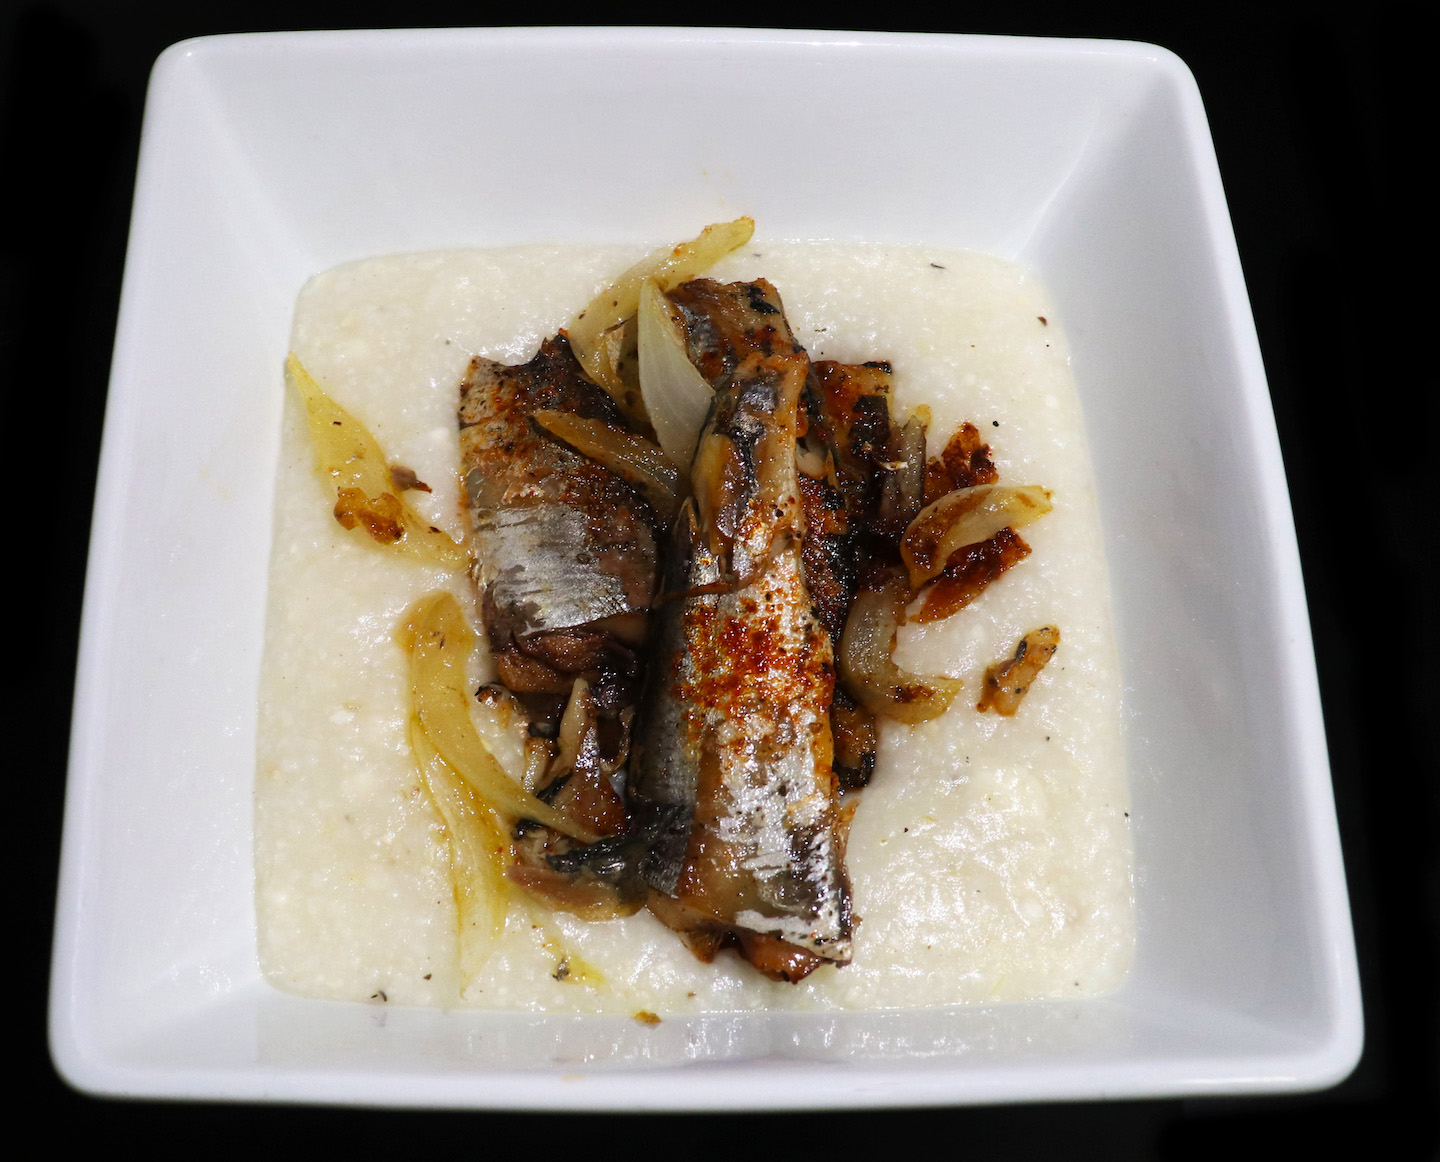 Sardines and Cheddar Grits with Caramelized Onion